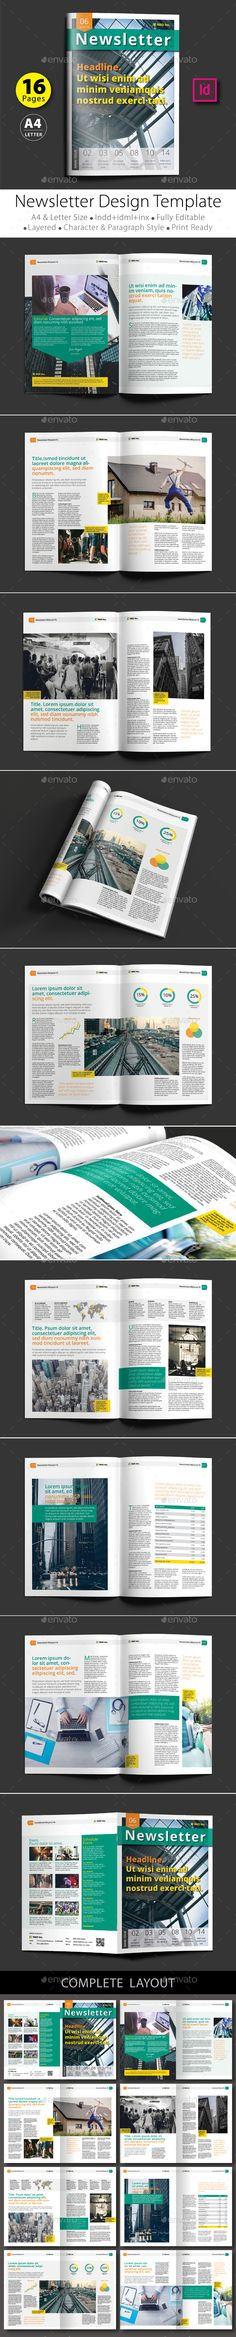 16 Pages Newsletter Design Template V.2 - Newsletters Print Template InDesign INDD. Download here: http://graphicriver.net/item/16-pages-newsletter-design-template-v2/16560539?s_rank=872&ref=yinkira